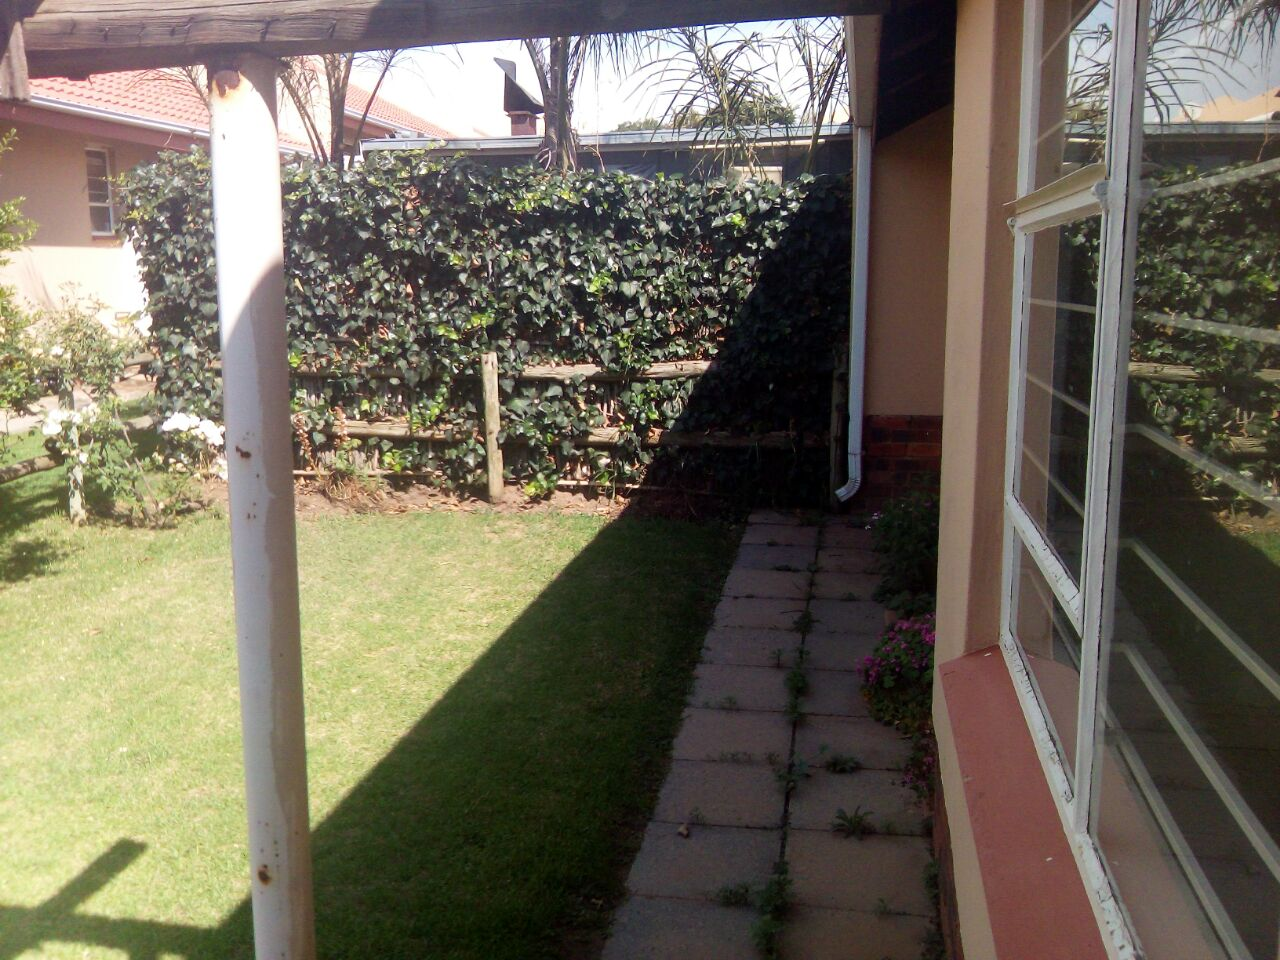 2 Bedroom Townhouse for sale in Sunninghill ENT0074719 : photo#13